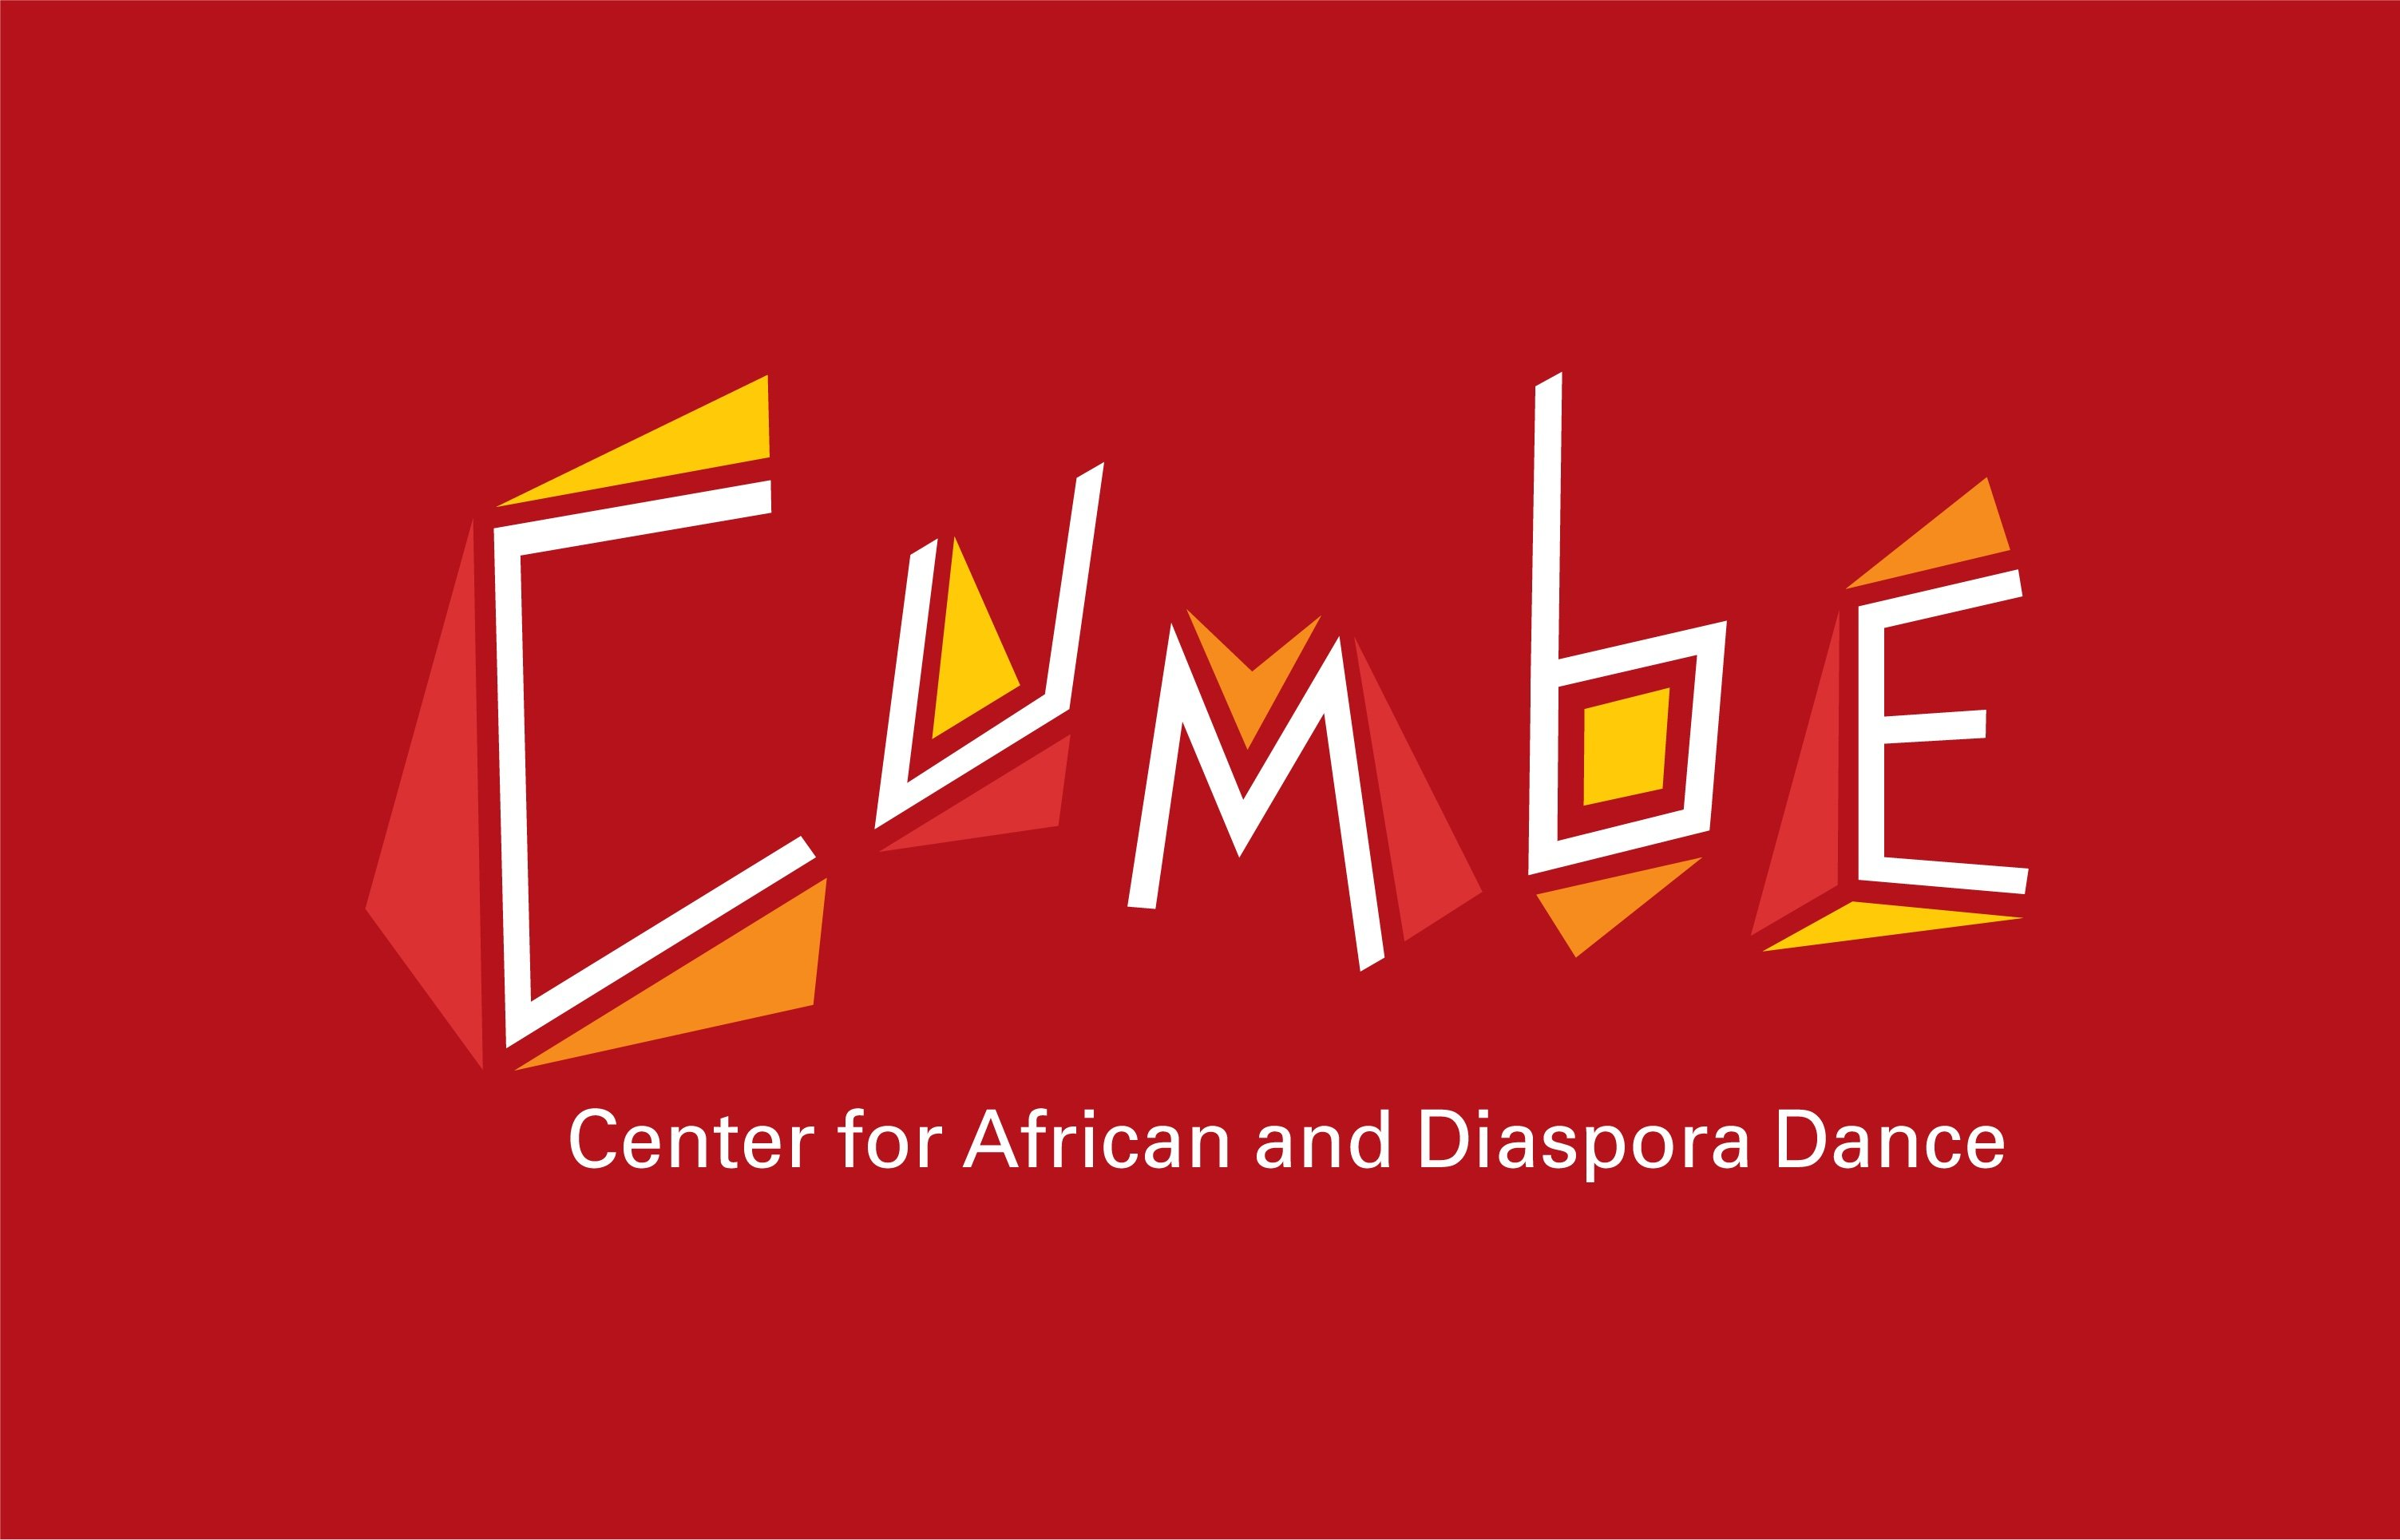 Cumbe: Center for African and Diaspora Dance